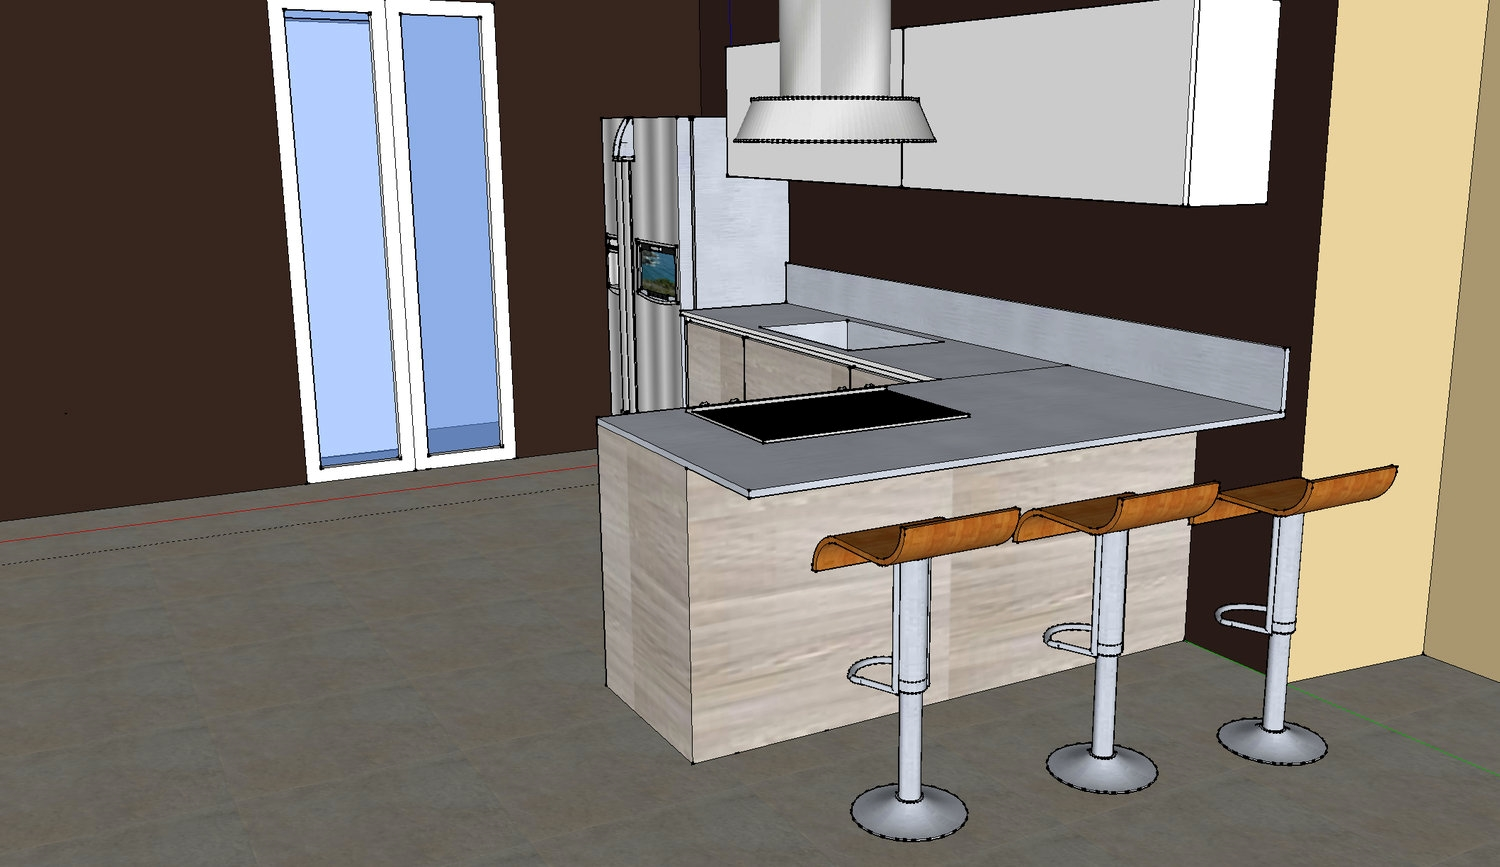 Awesome Progetta Cucina 3d Gallery - Skilifts.us - skilifts.us